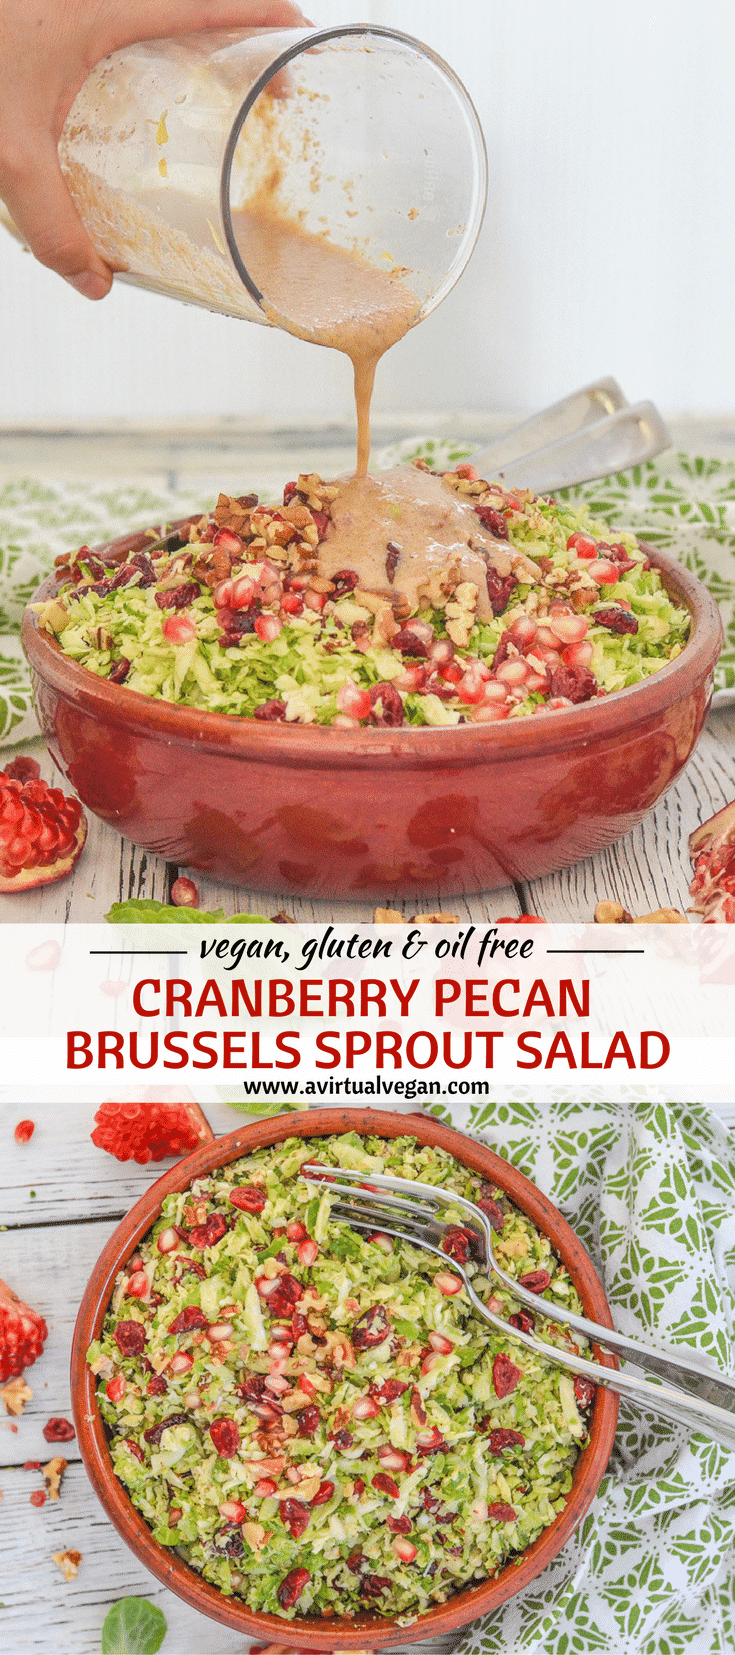 This citrus and cinnamon infused Cranberry Pecan Brussels Sprout Salad is fresh & absolutely packed with flavour & interesting textures. It's also hearty & warming thanks to the orange & cinnamon vinaigrette. Perfect for all of your fall & winter entertaining!